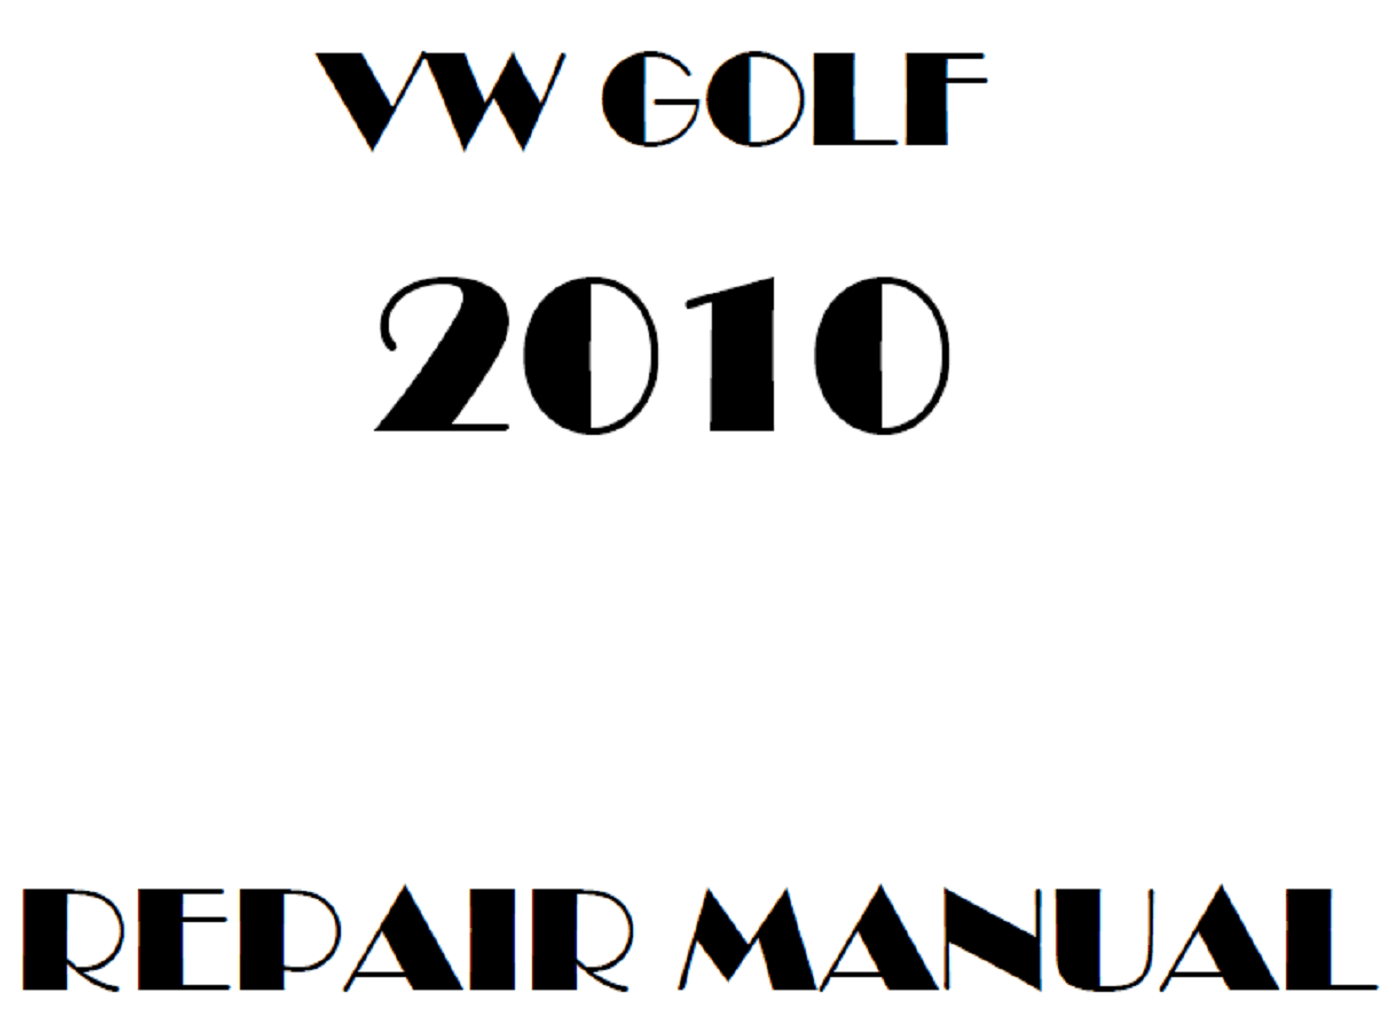 2010 Volkswagen Golf repair manual